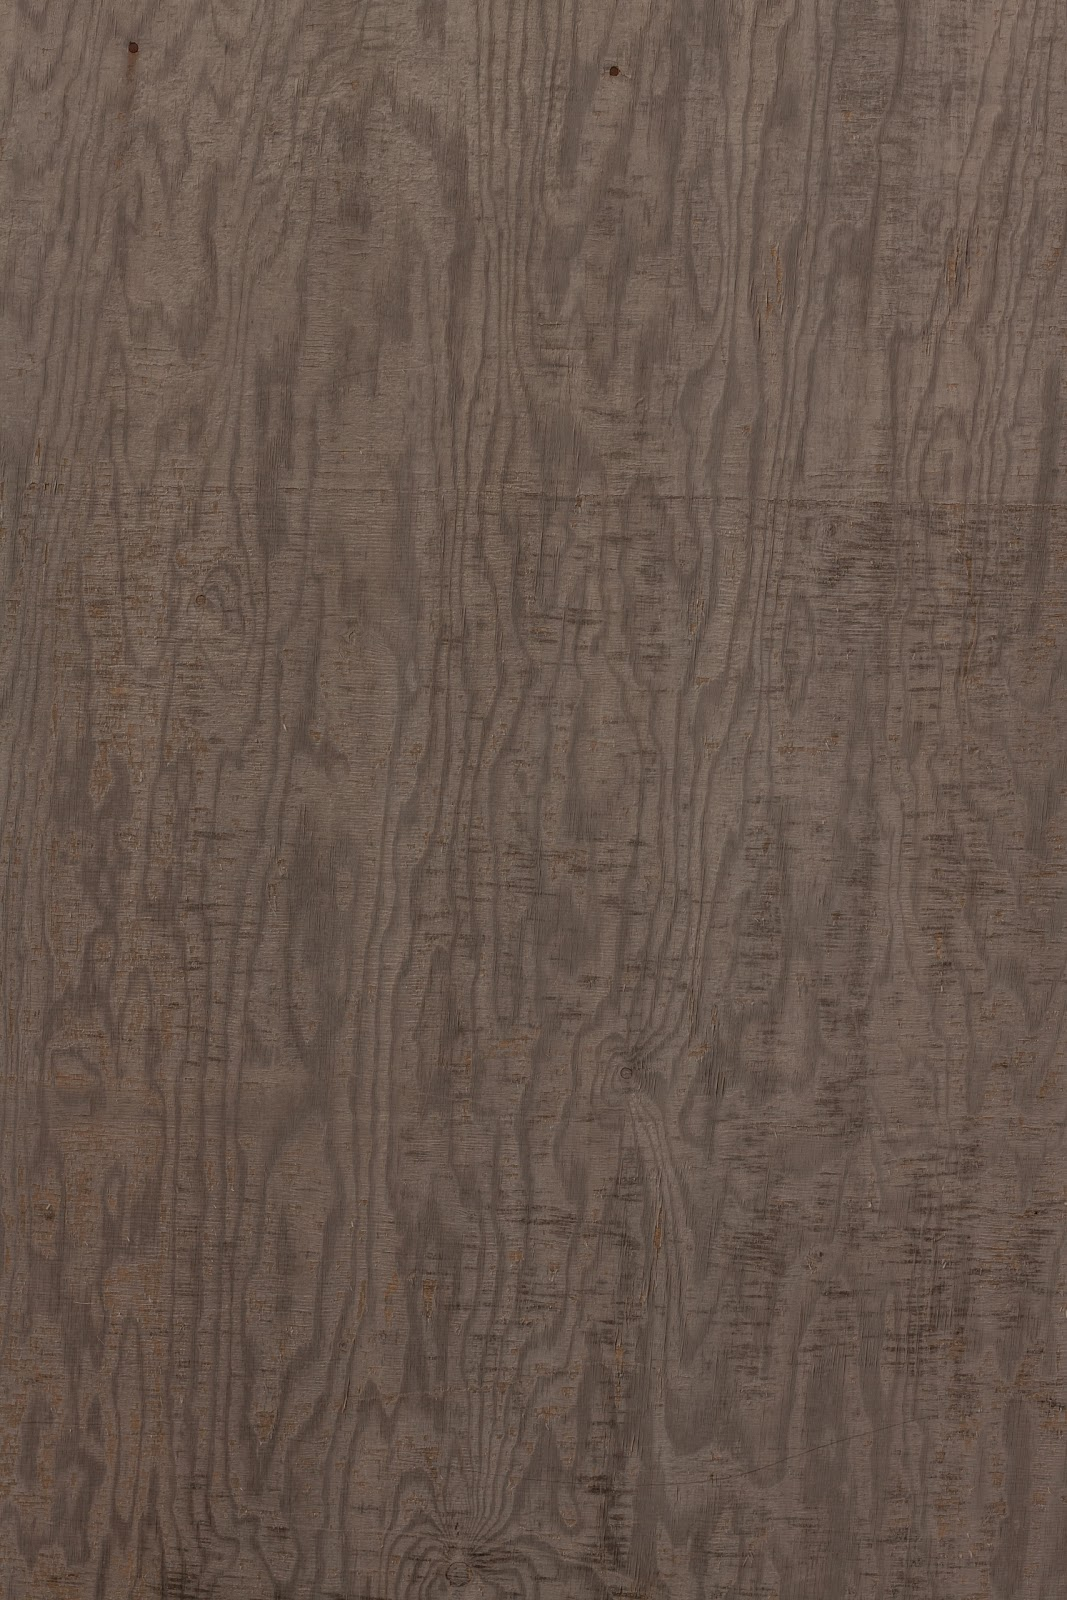 Long wooden board texture 3168x4752